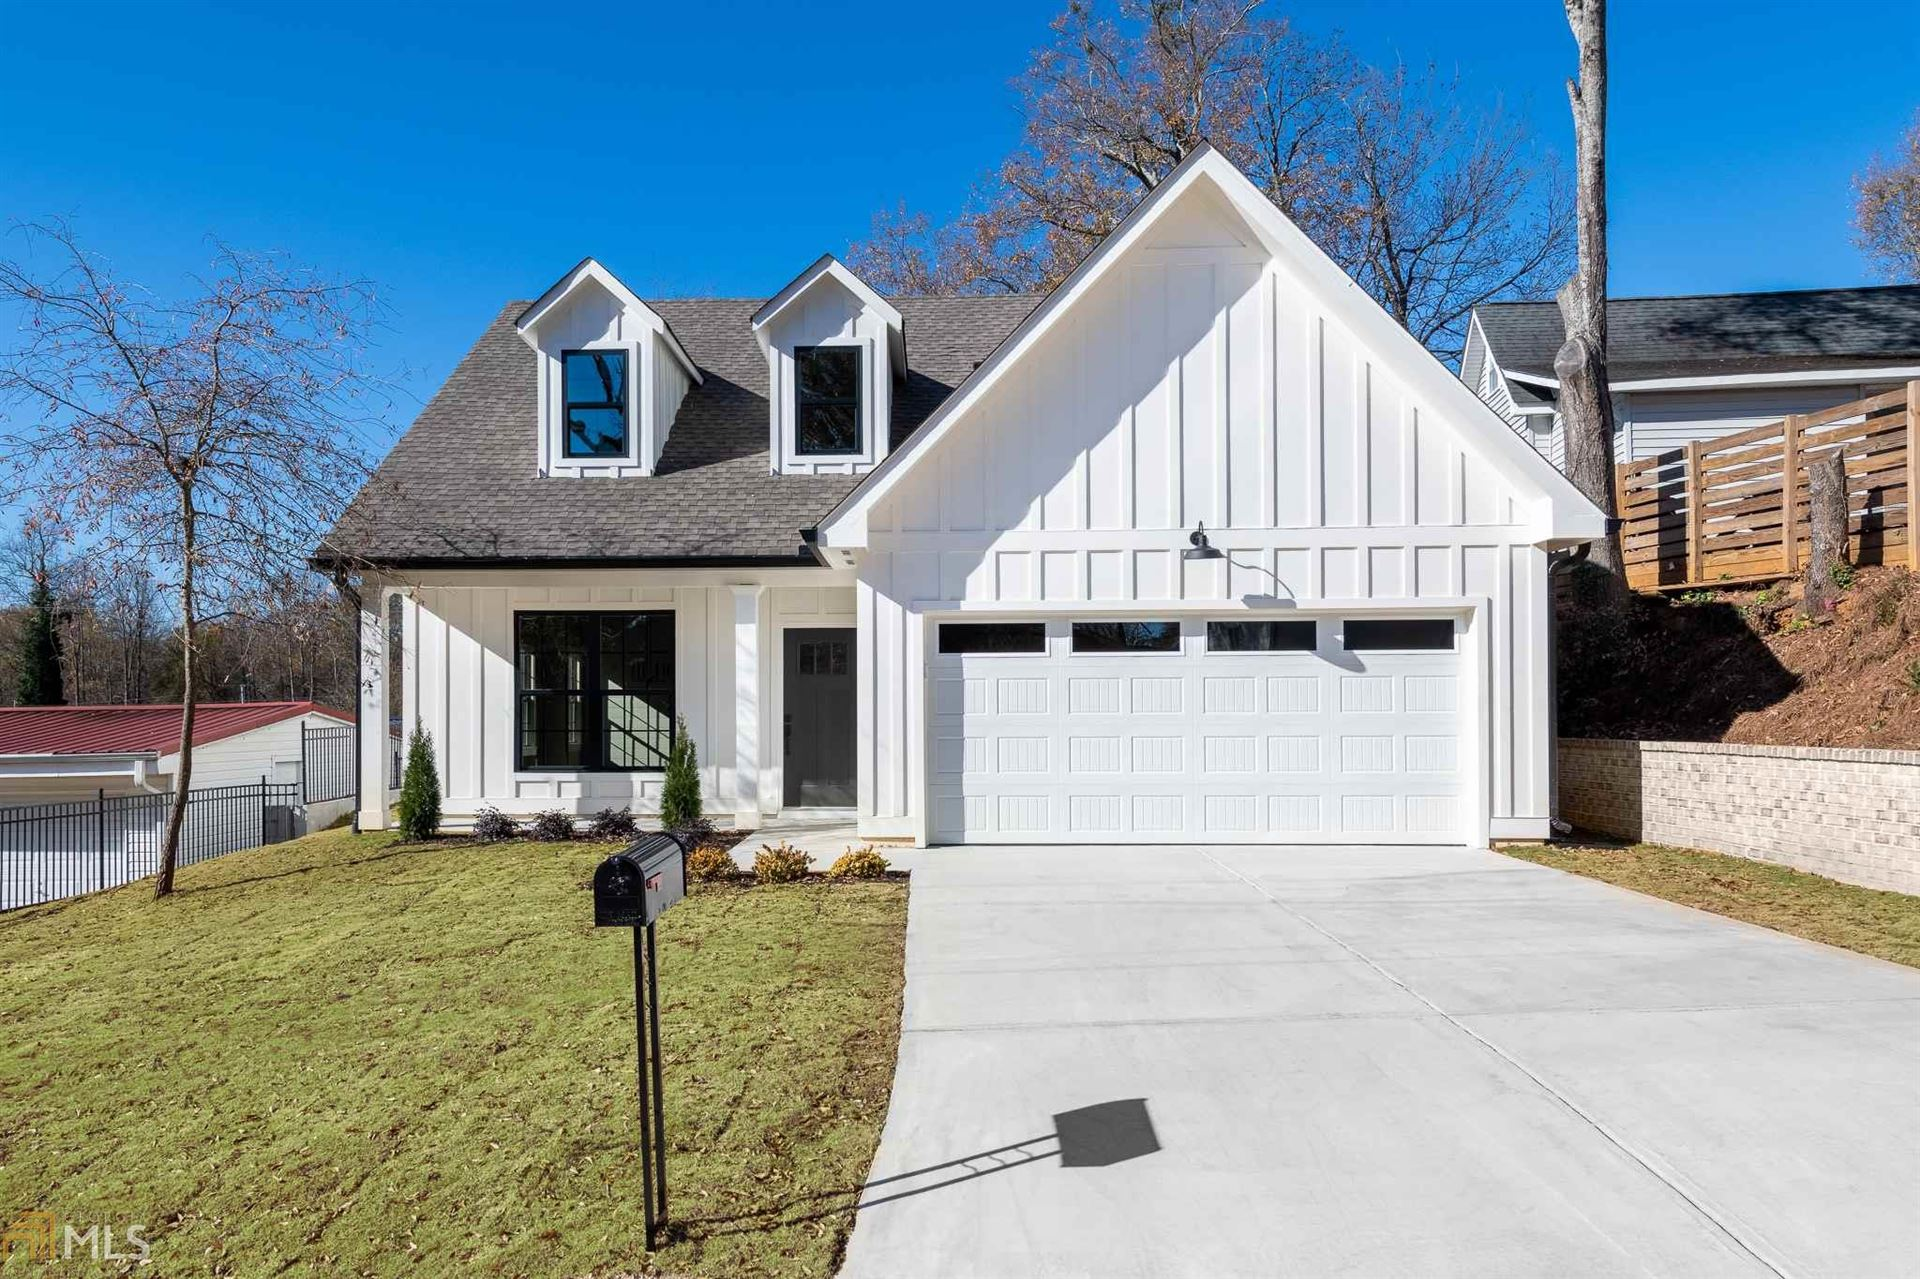 575 George St, Buford, GA 30518 - MLS#: 8786158